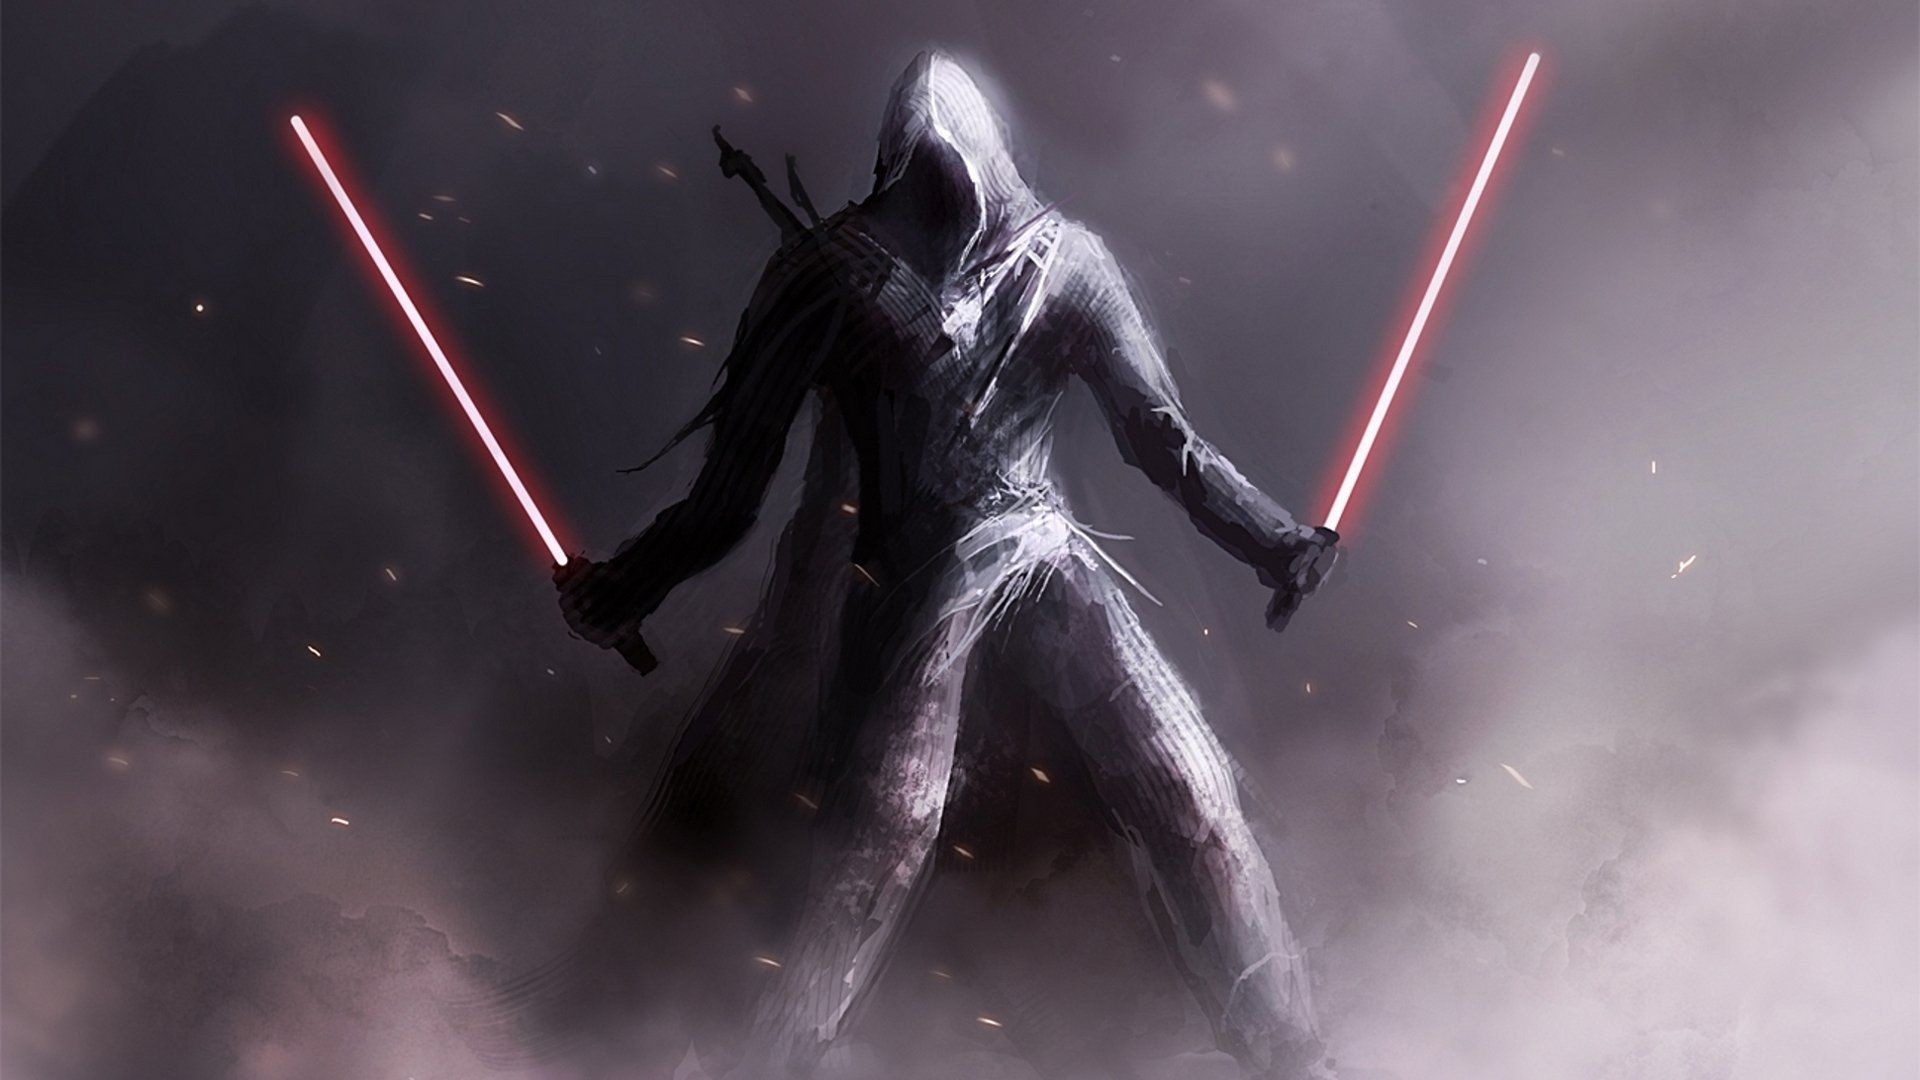 1920x1080 Sith Wallpaper Hd Wallpaper » WallDevil - Best free HD desktop and mobile  wallpapers